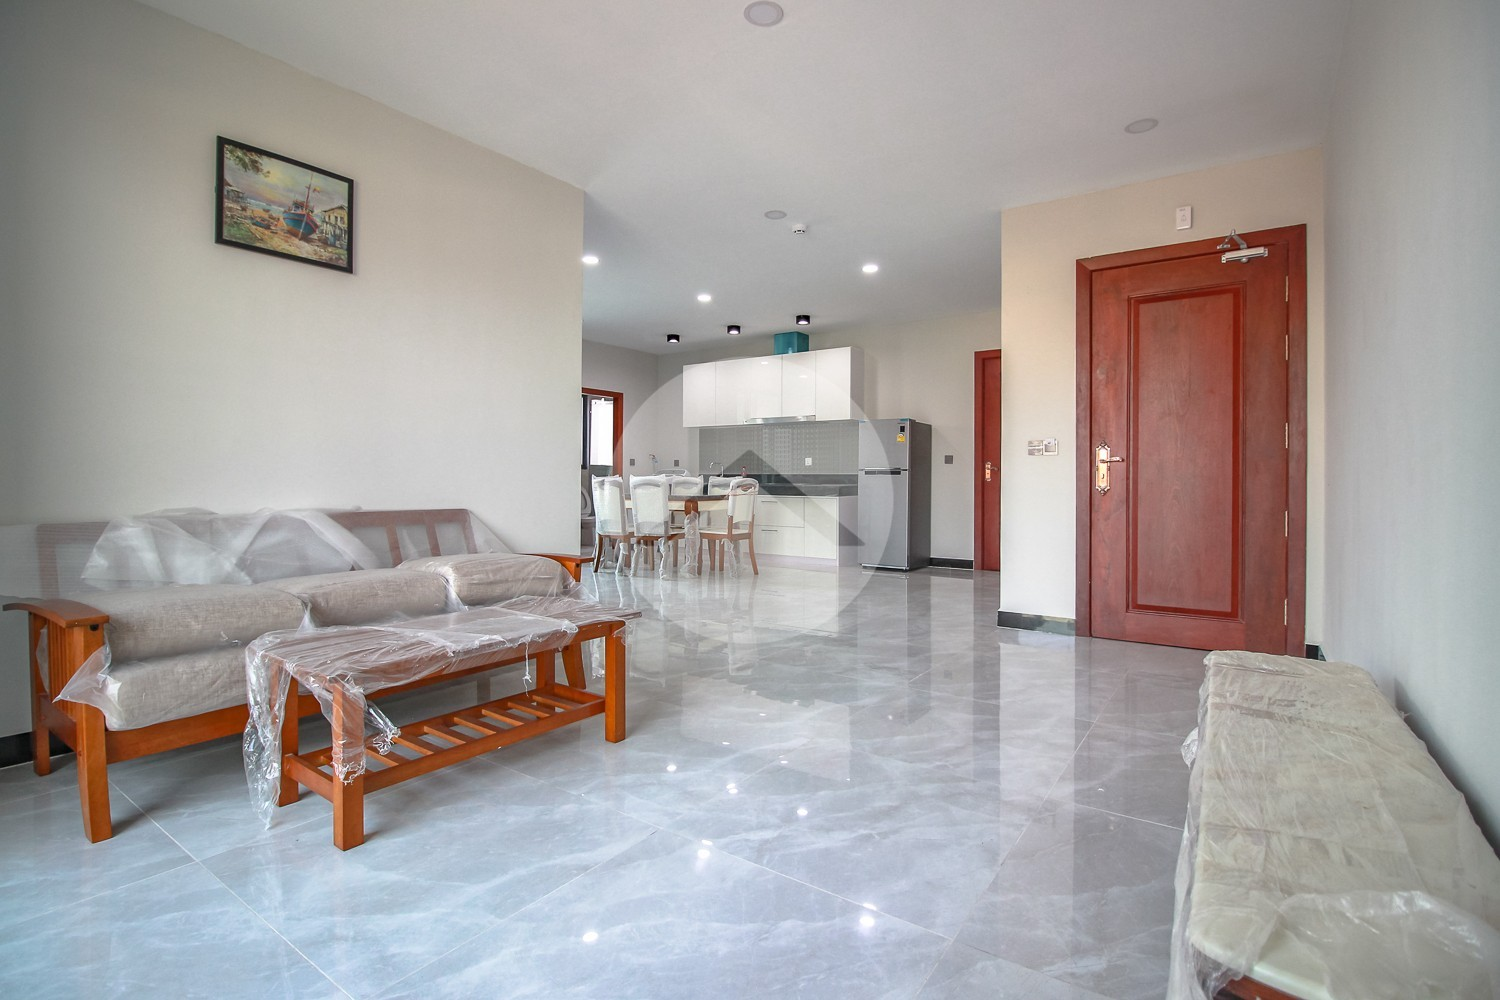 2 Bedroom Apartment For Rent - Near Olympic Market, Phnom Penh